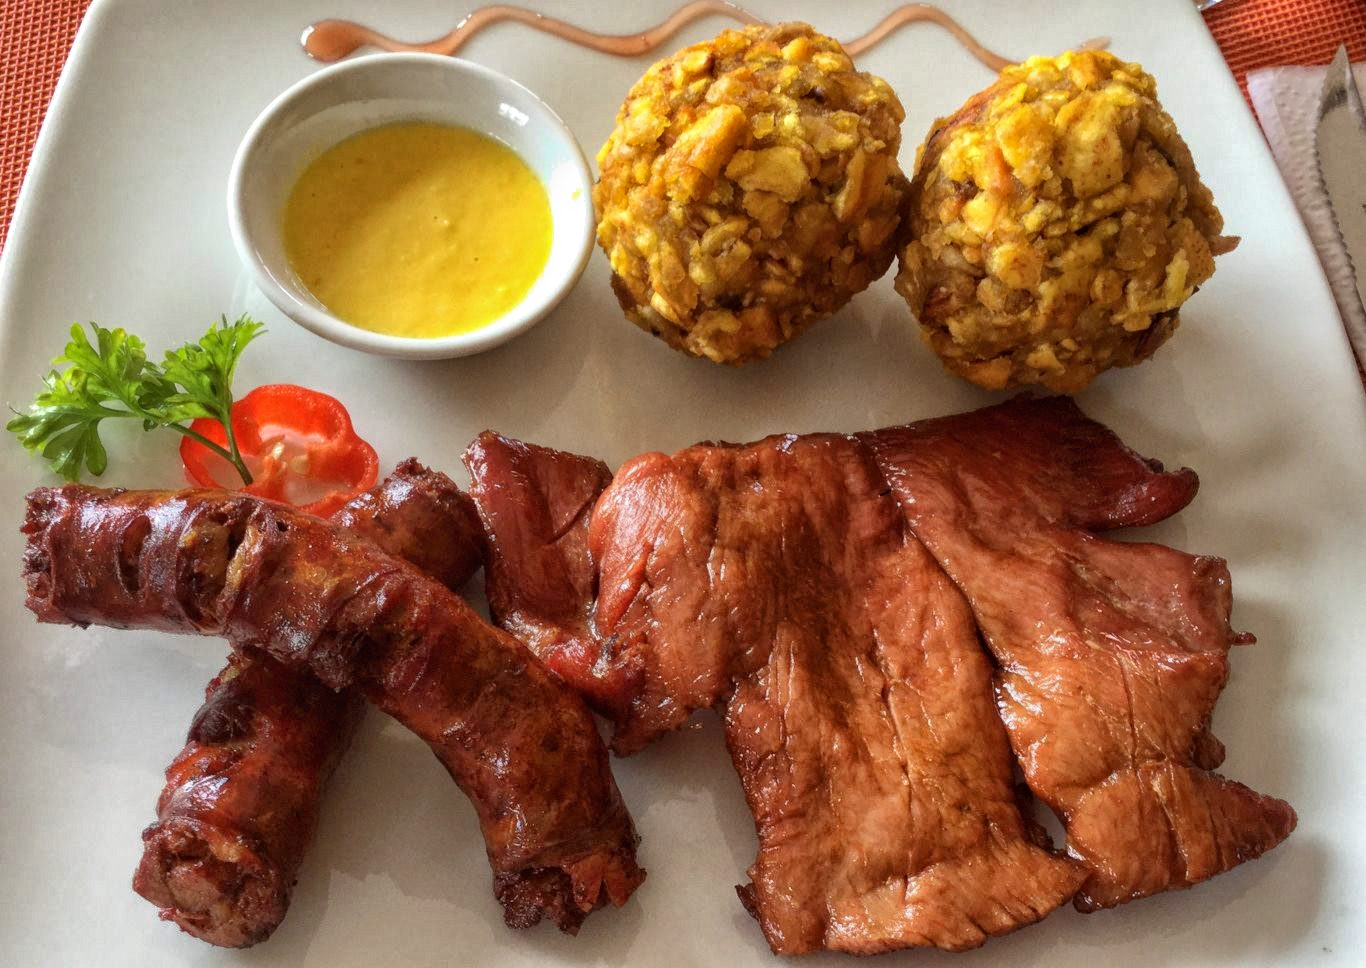 Ingredients of Peruvian cuisine: Plantain